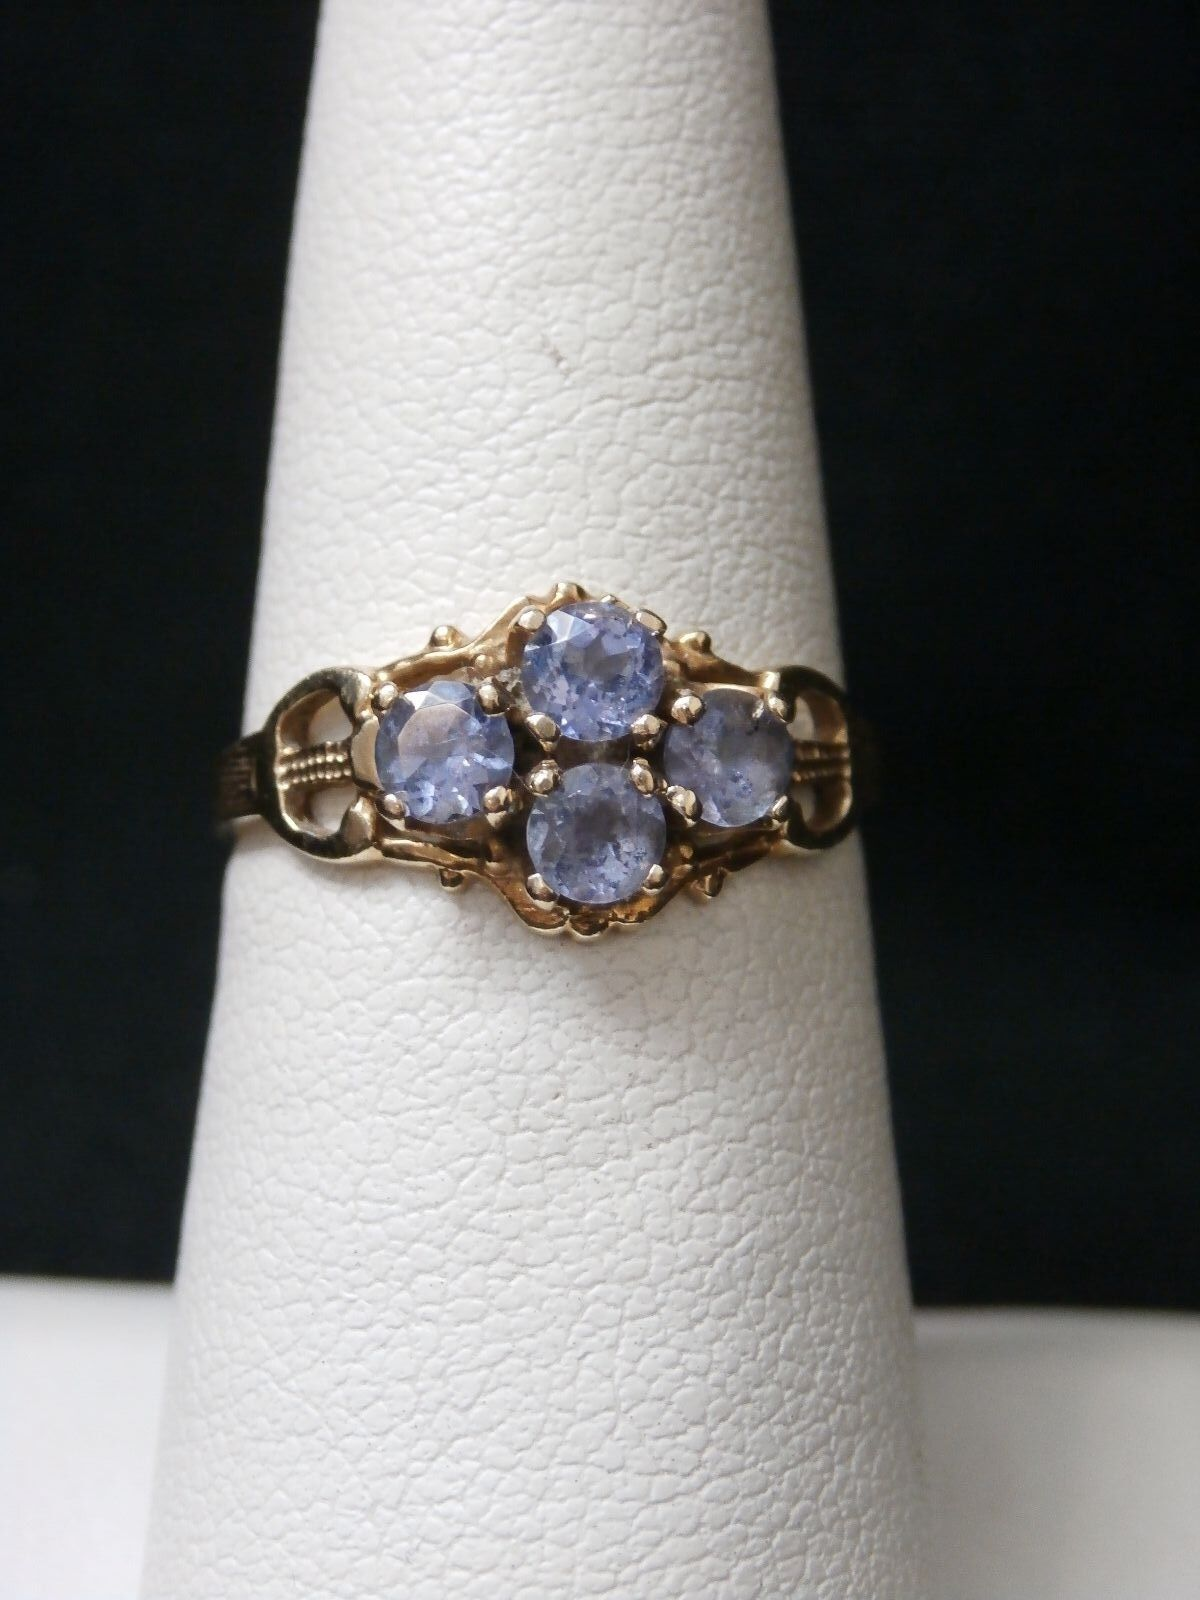 Unique 10k Yellow gold Tanzanite Dainty Handmade Ring. Make Offer